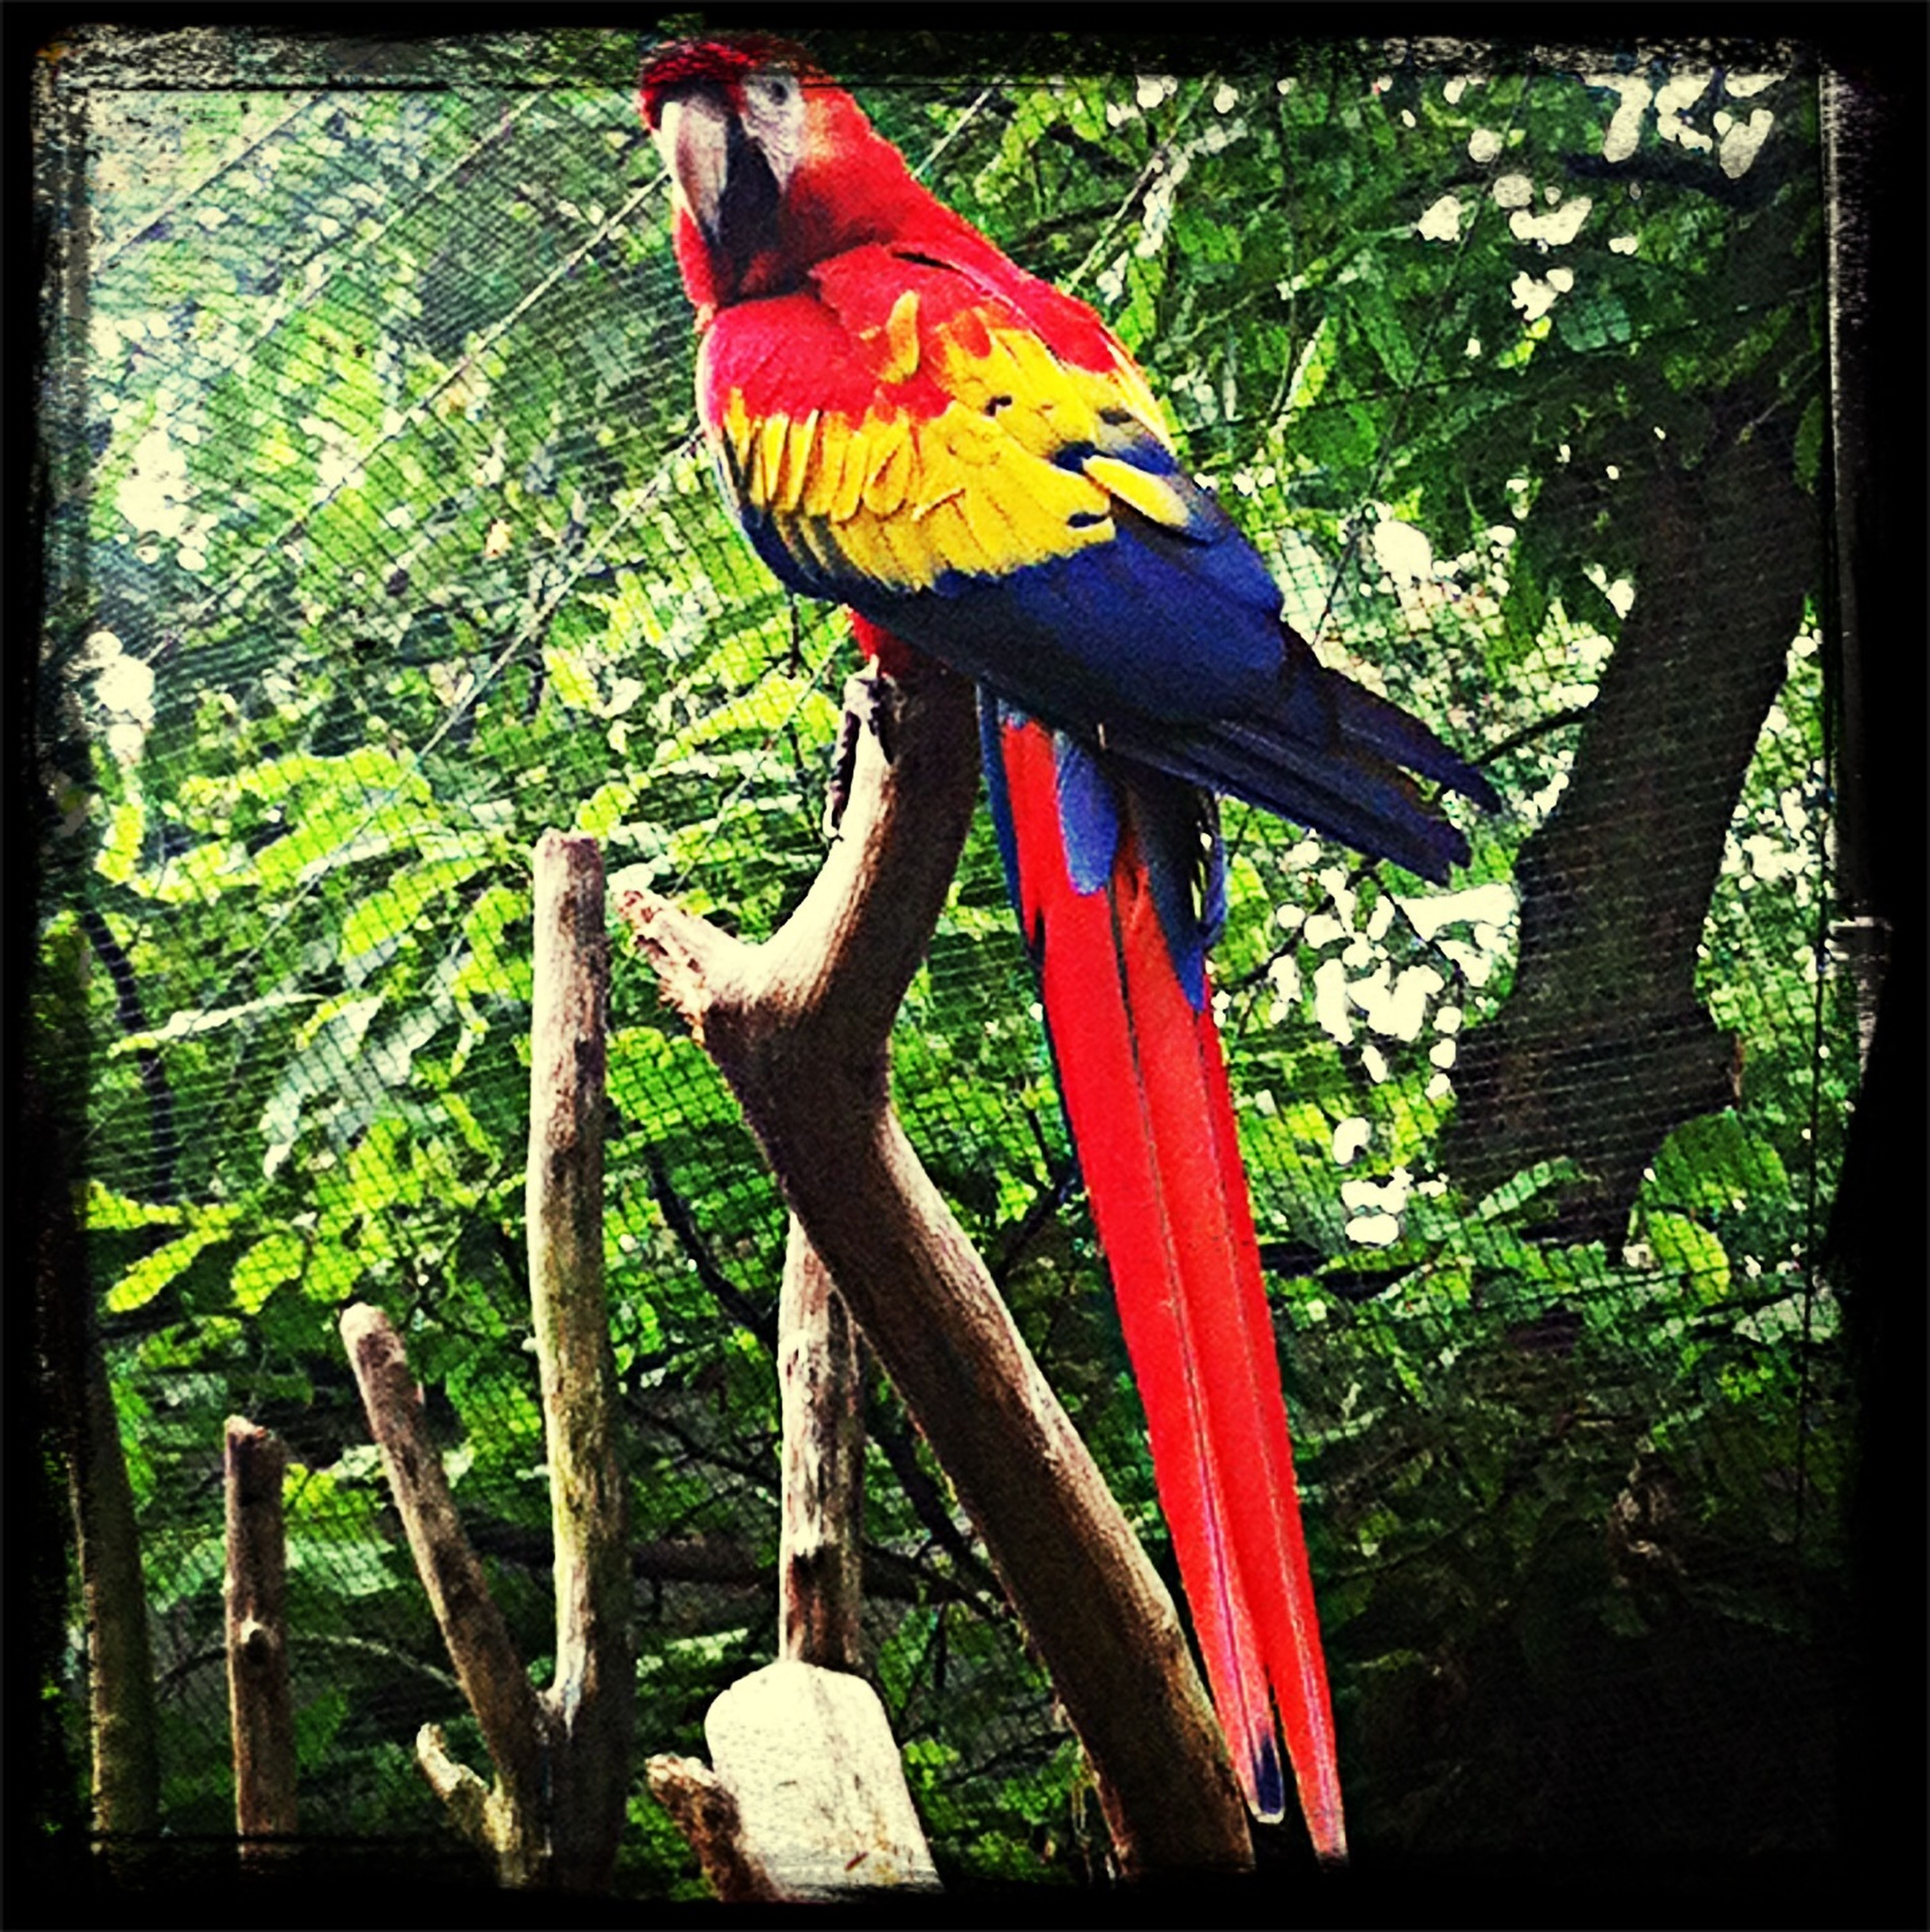 bird, animal themes, one animal, animals in the wild, tree, transfer print, wildlife, auto post production filter, perching, multi colored, parrot, beak, nature, red, focus on foreground, day, close-up, beauty in nature, full length, outdoors